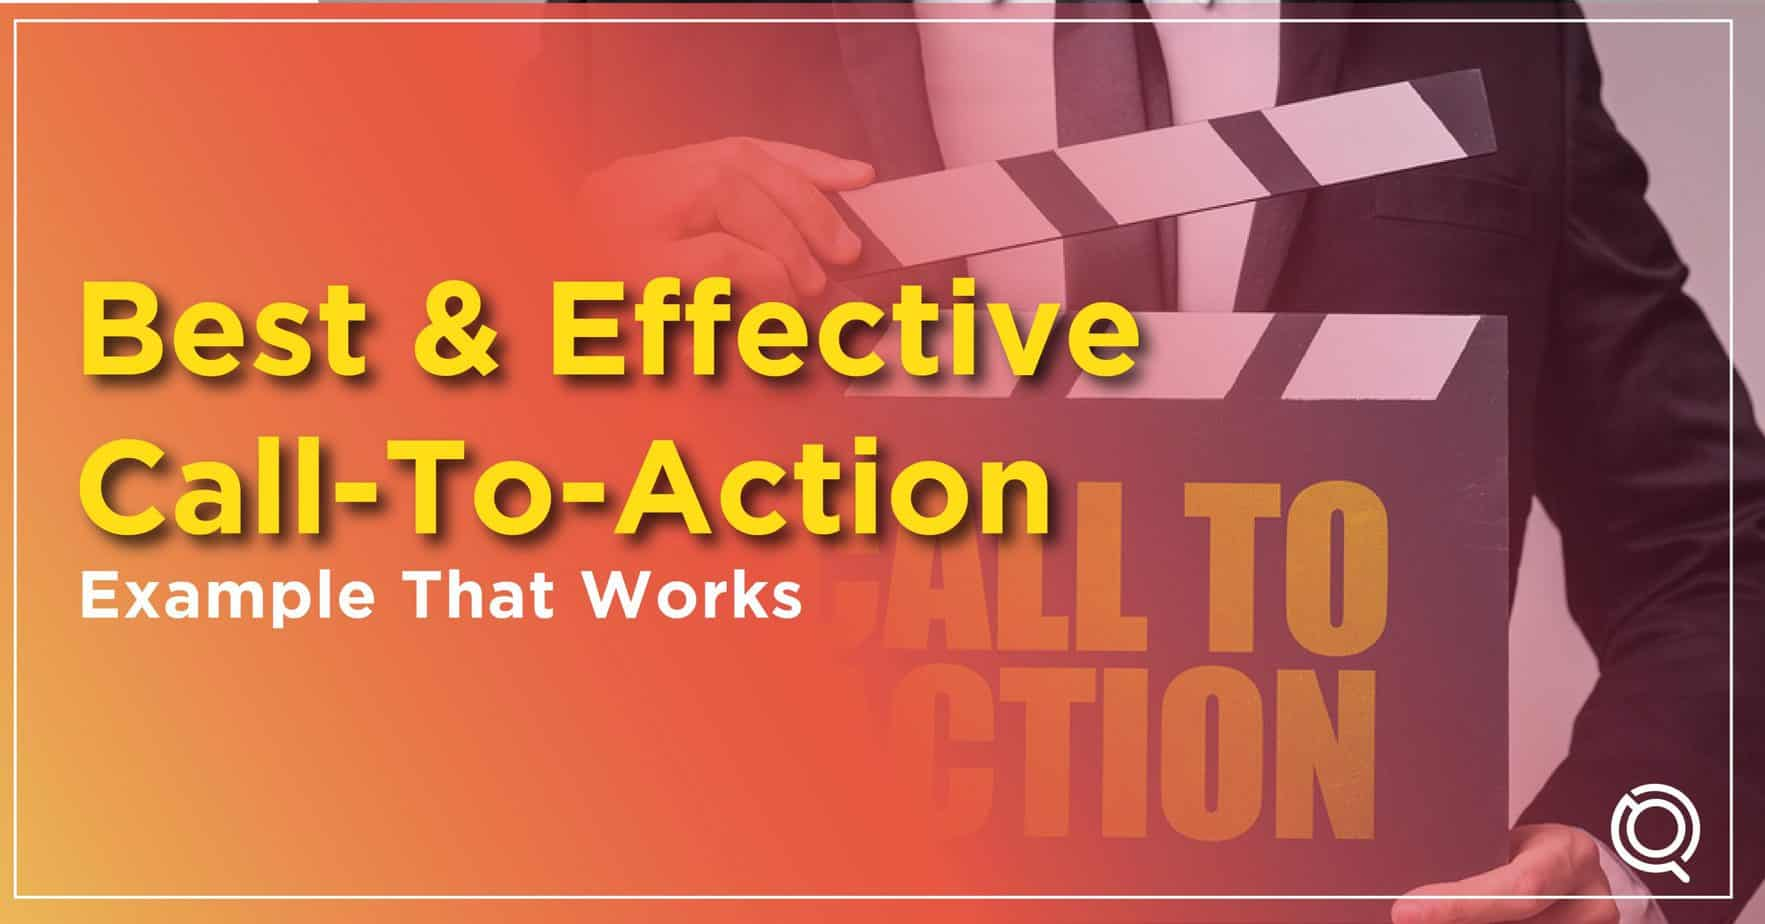 Best & Effective Call-To-Action Example That Work - One Search Pro Digital Marketing Agency